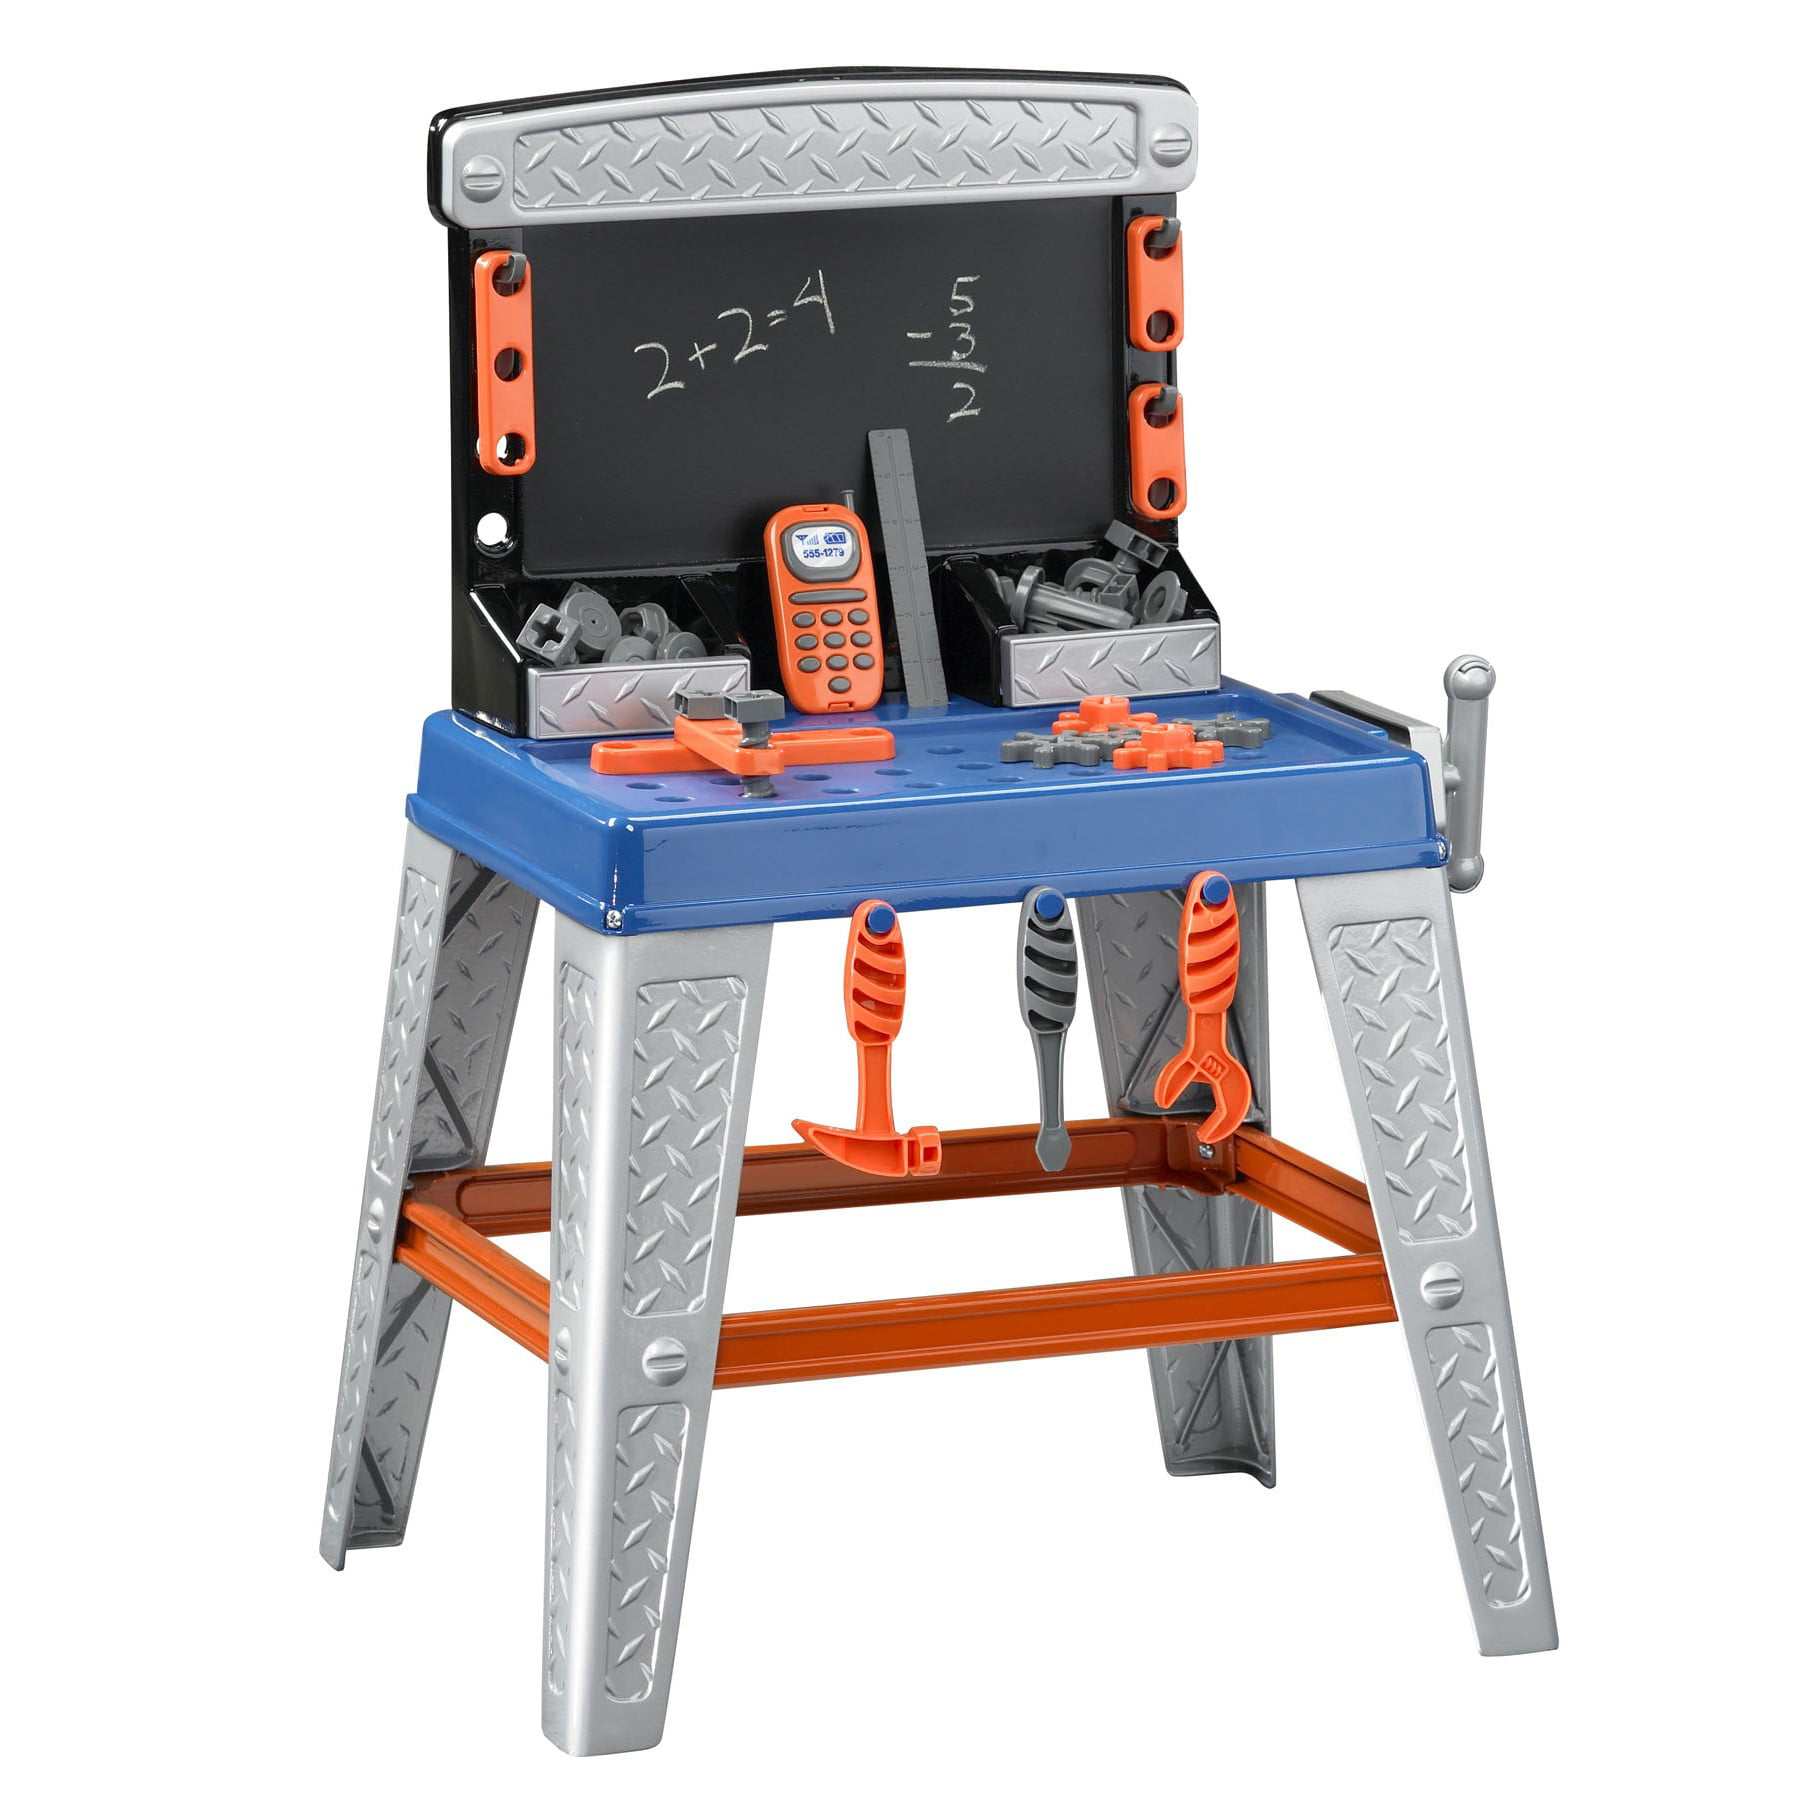 Incredible American Plastic Toys My Very Own Tool Bench Walmart Com Gmtry Best Dining Table And Chair Ideas Images Gmtryco